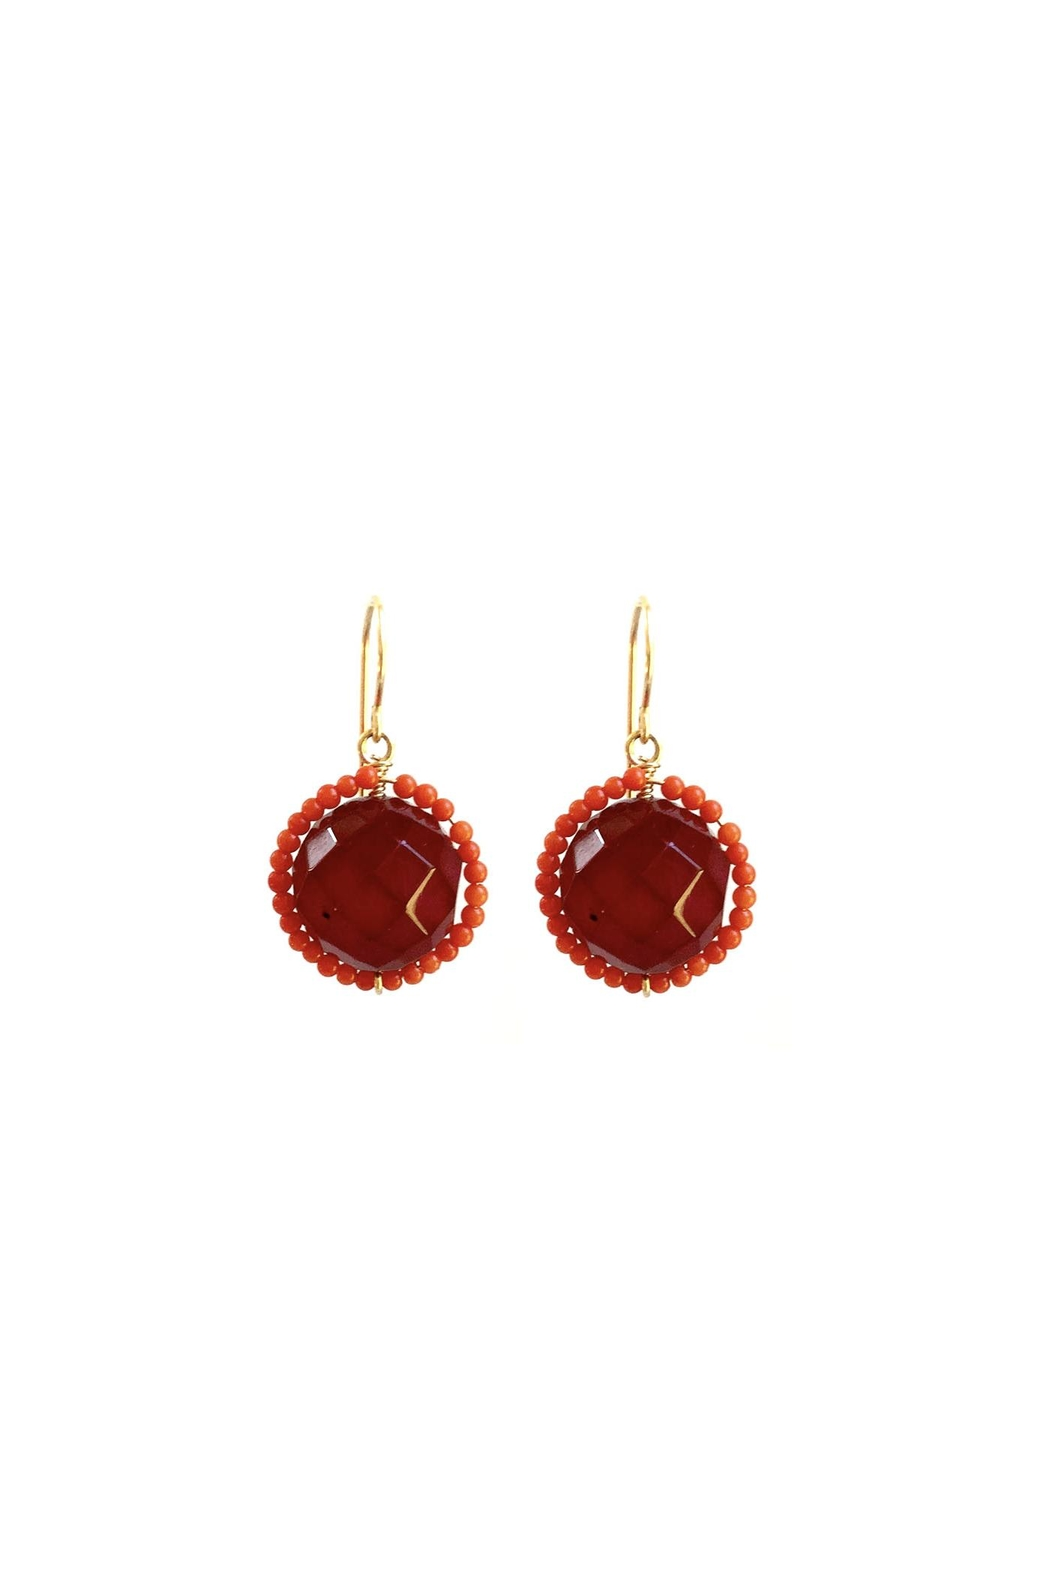 Susan Goodwin Jewelry Red Coral Earrings - Main Image